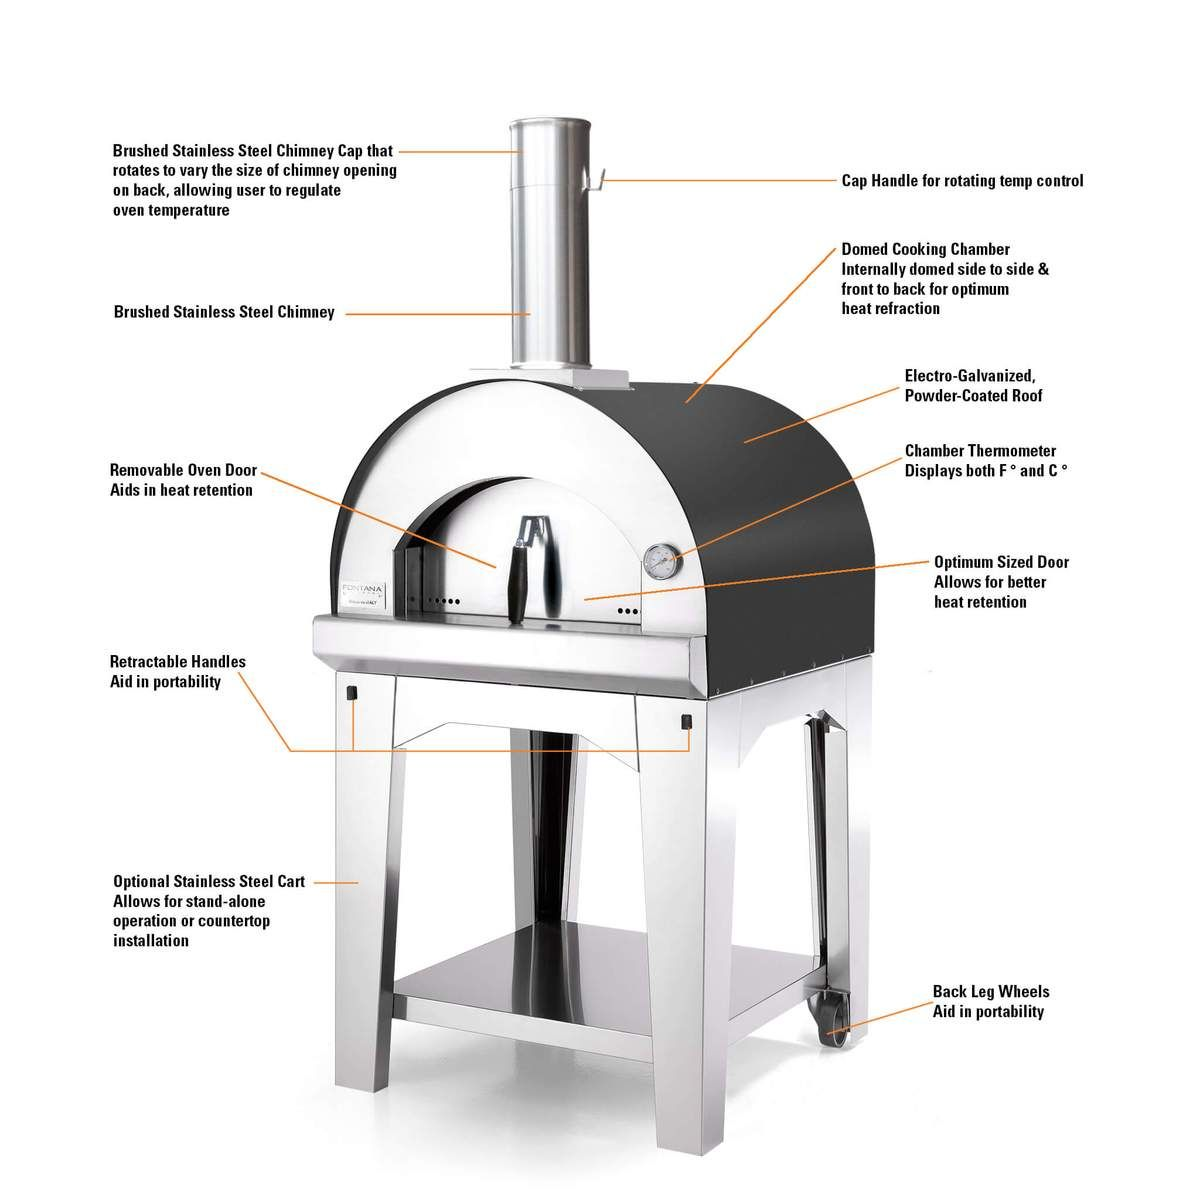 Pin On Barrel Oven Woodfired